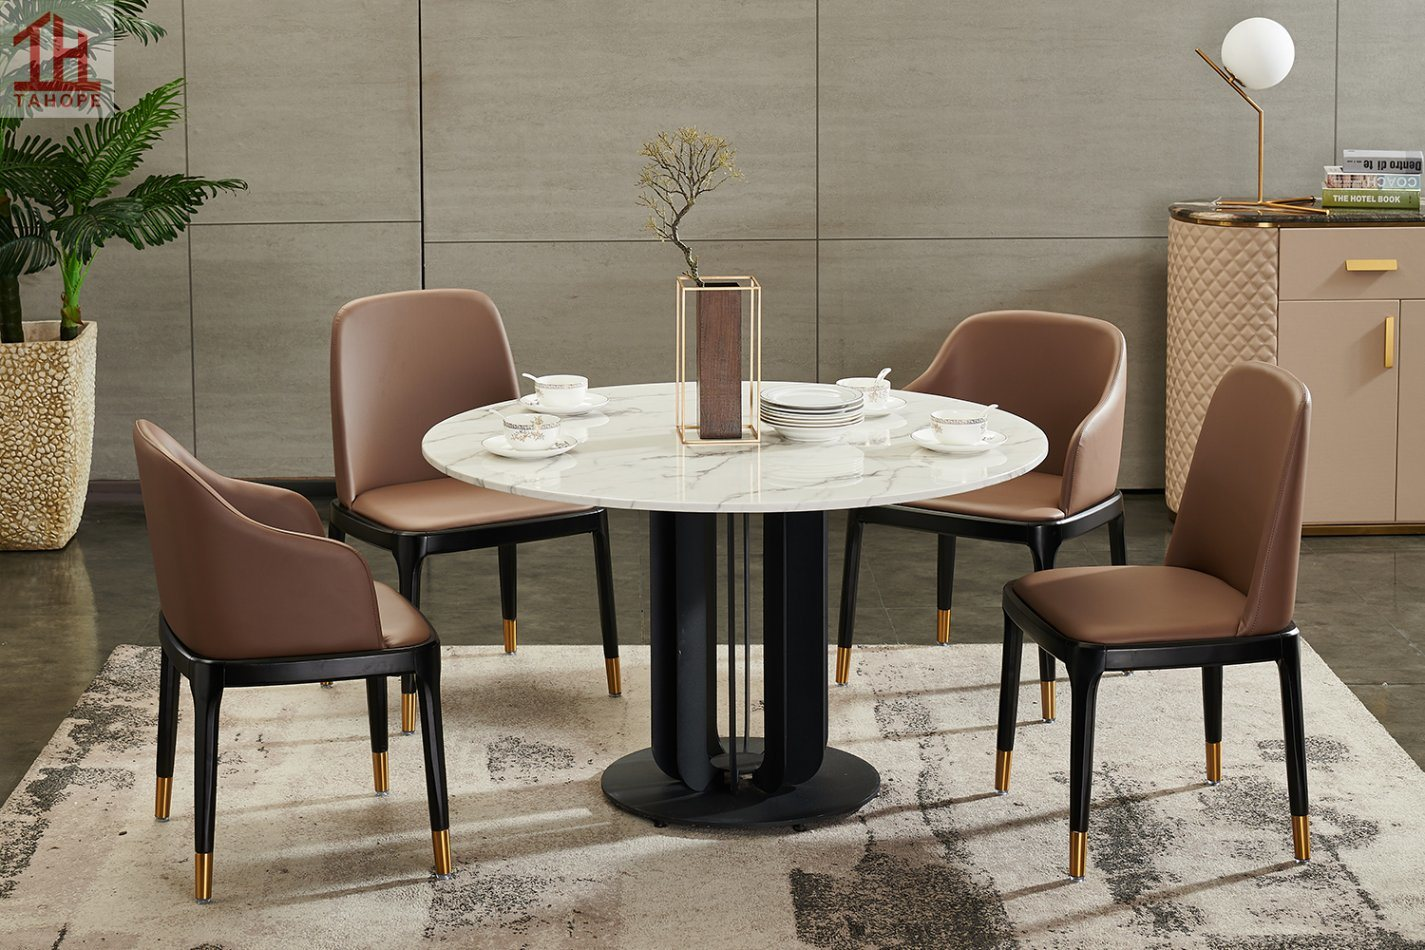 [Hot Item] Luxury Italian 9.9m Marble Top Round Dining Table Set 9 Chairs  Metal Feet